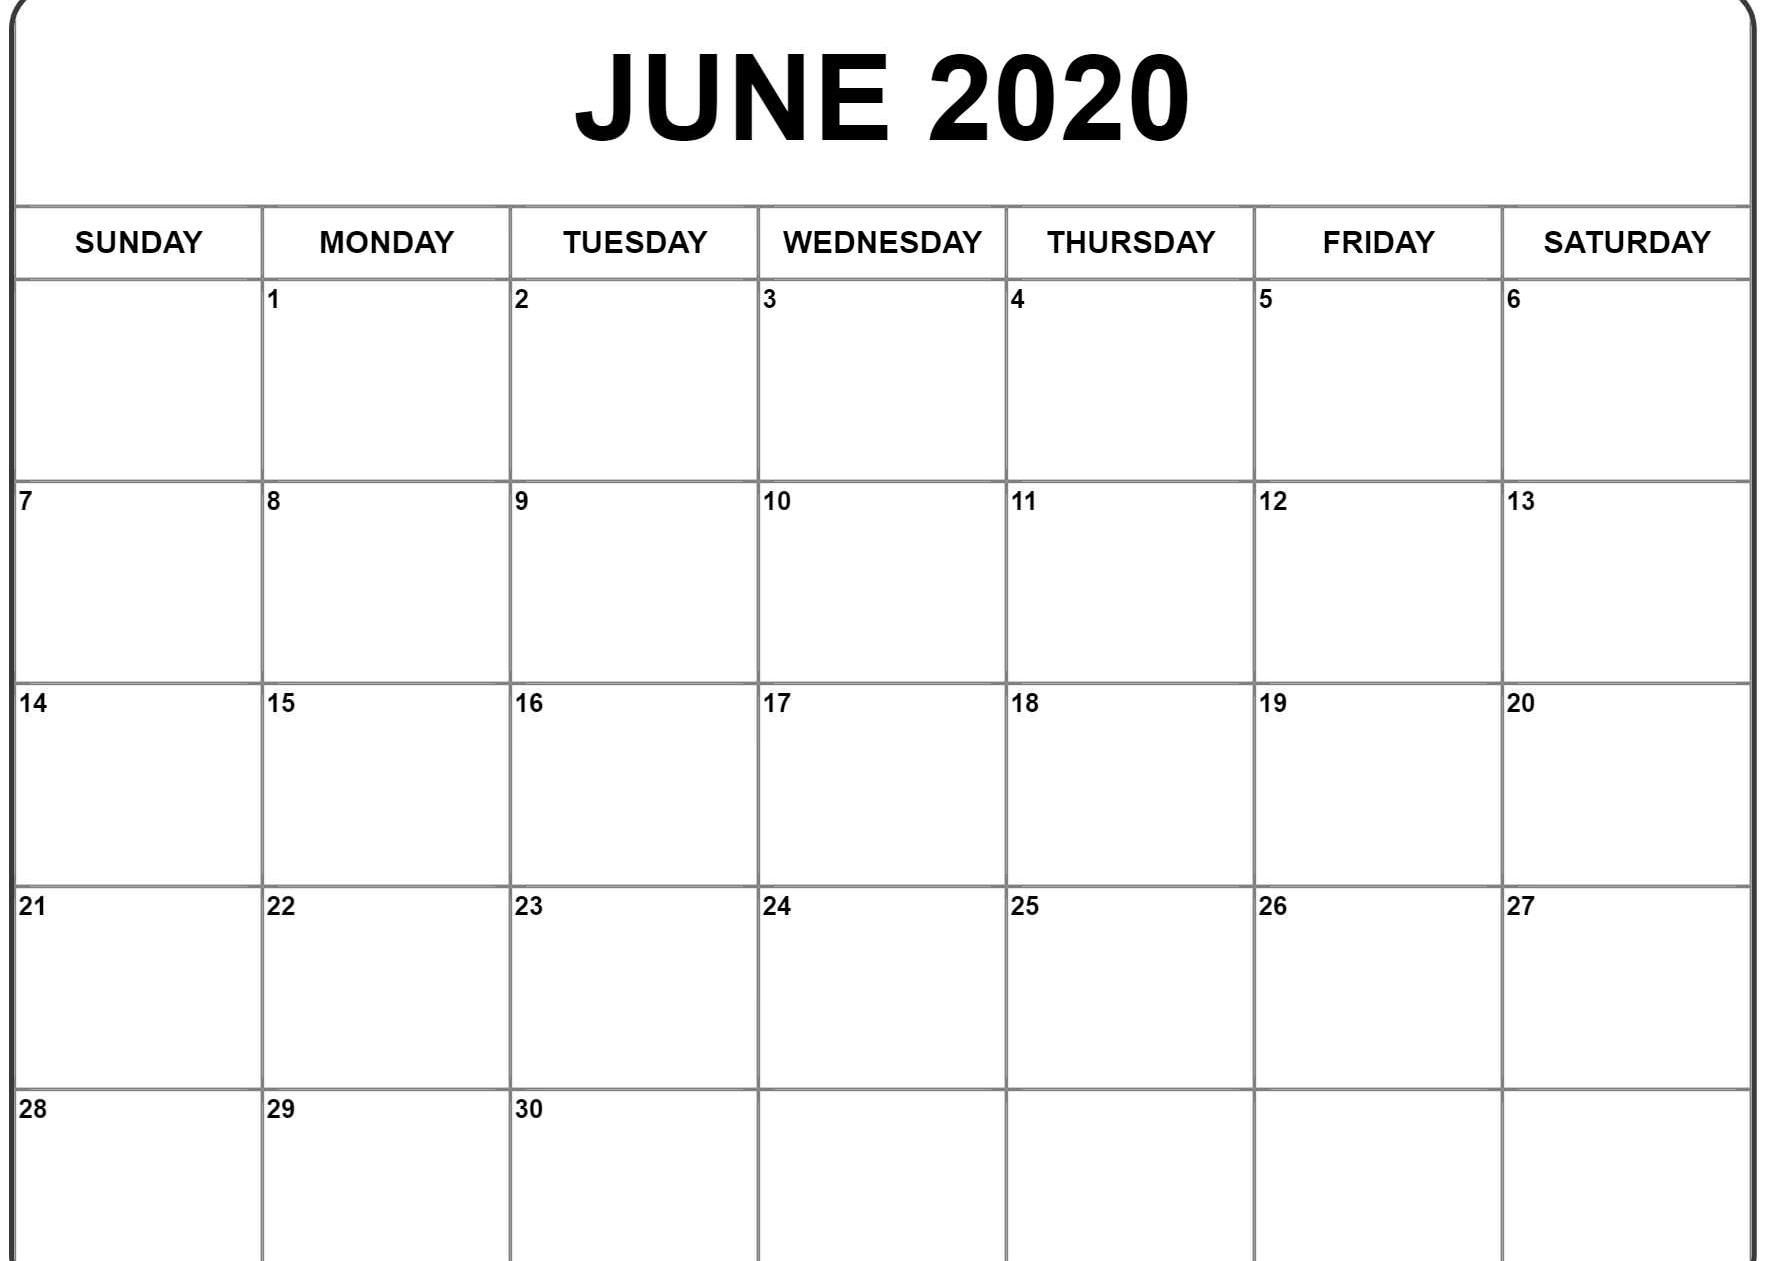 June 2020 Calendar | Printable Calendar Template, Monthly within Vertex 2020 Calendars Monday Through Sunday